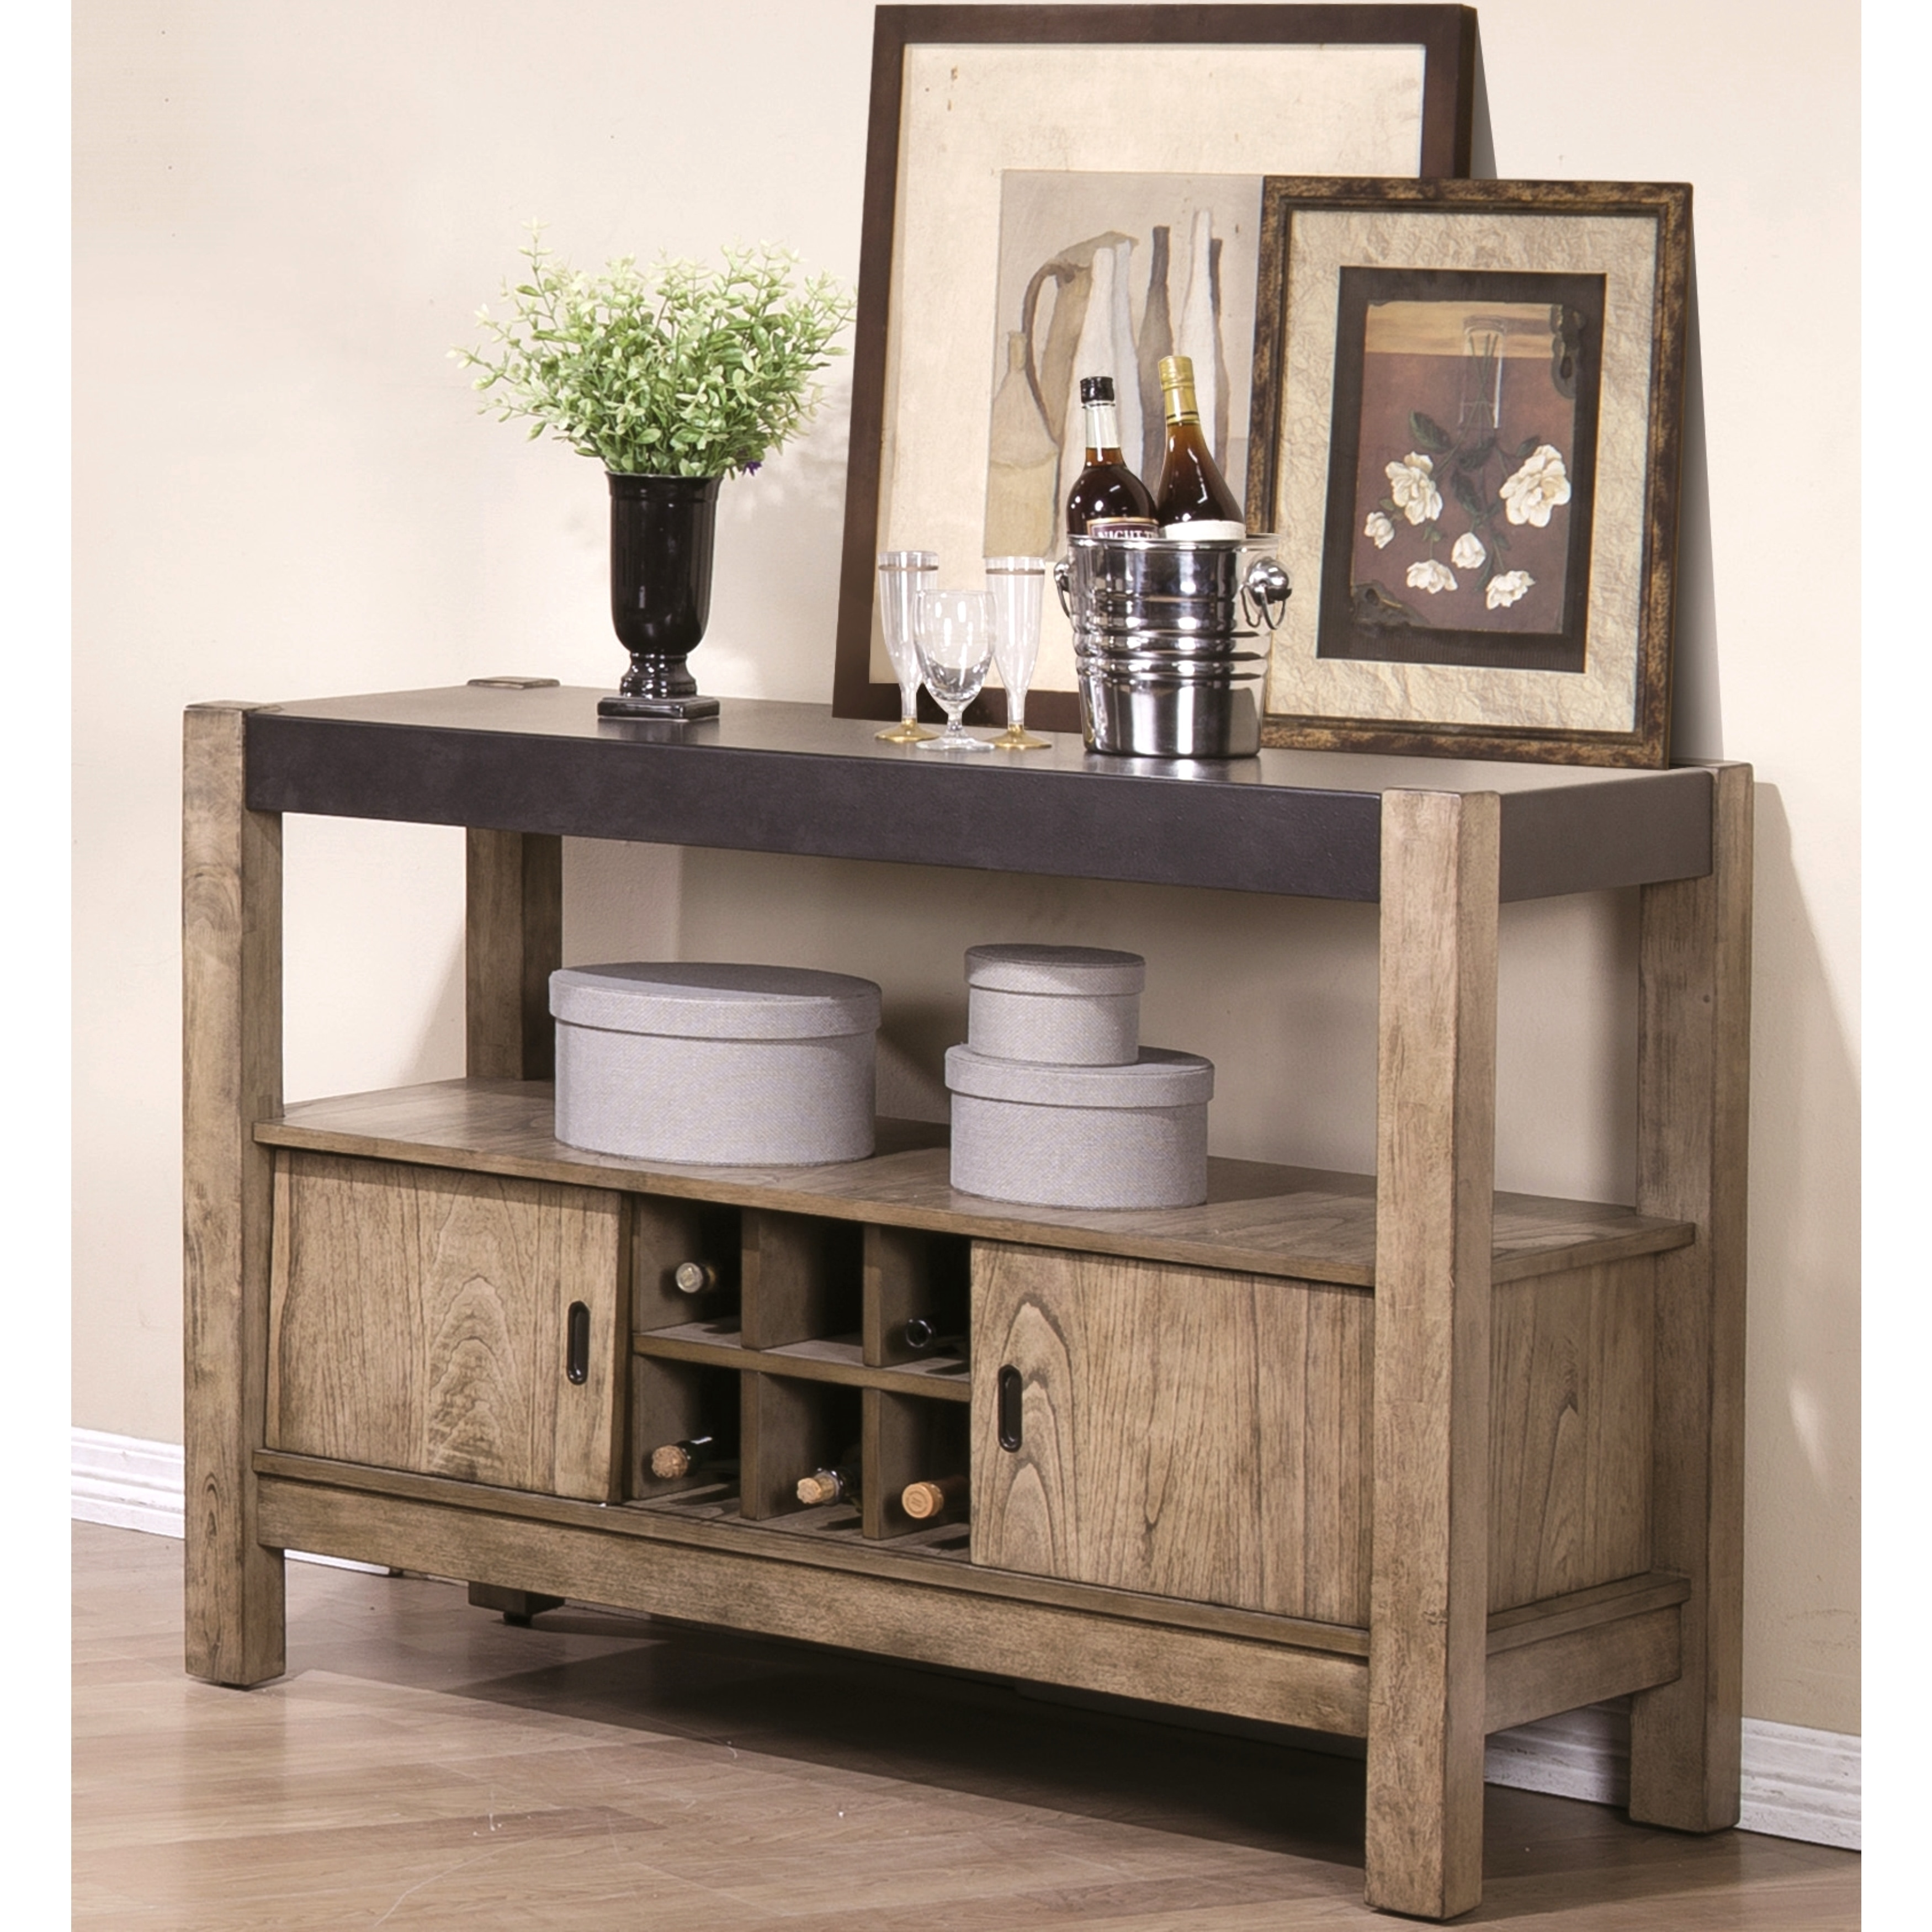 Dining Set With Buffet: Modern Rustic Concrete Design Dining Set With Wine Rack